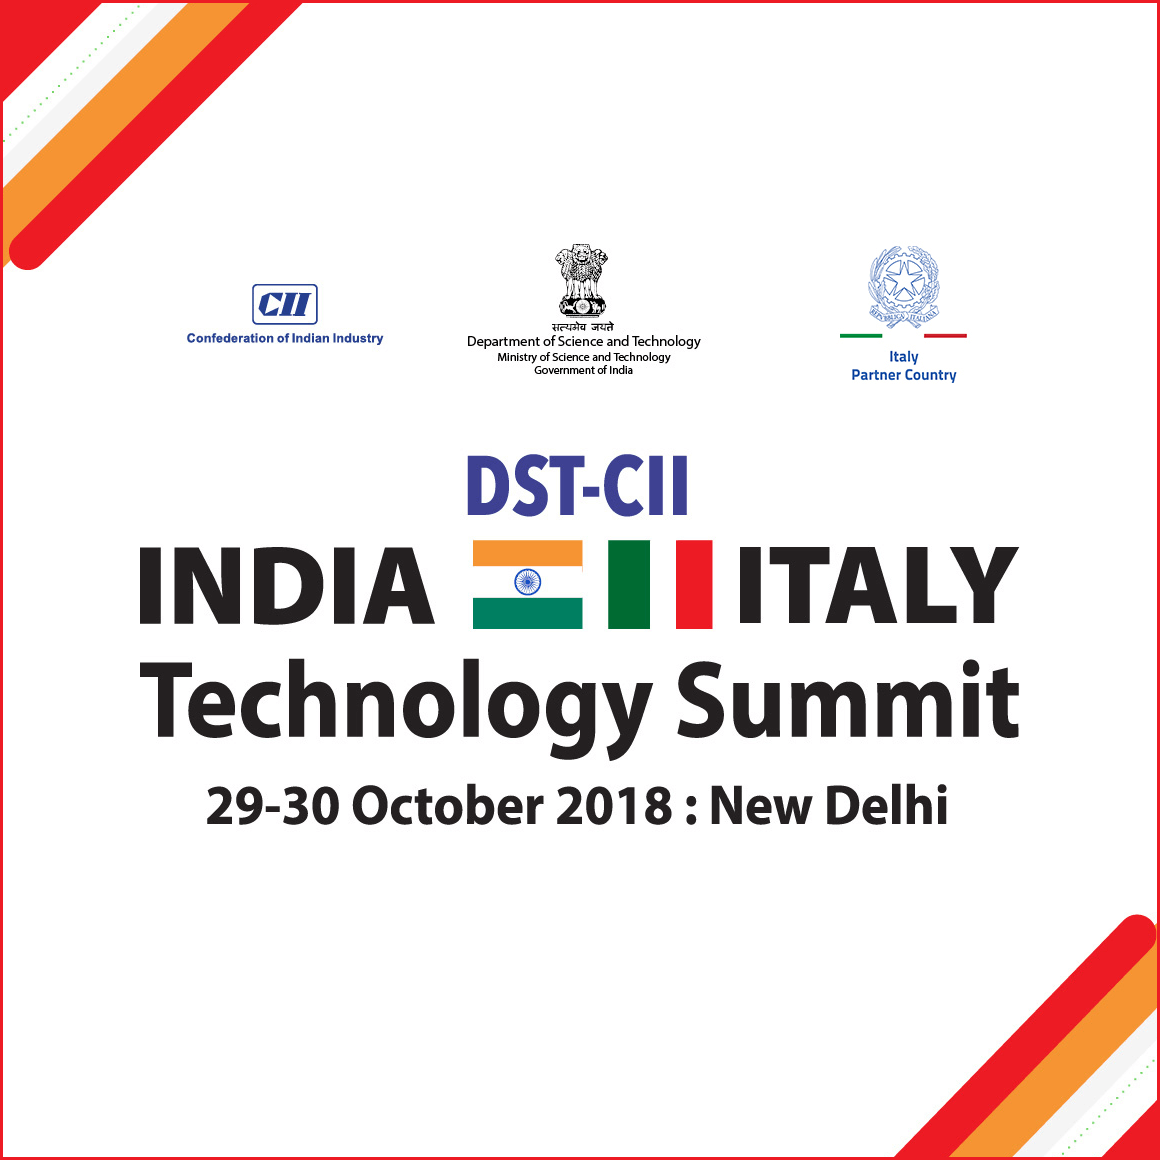 Kaleyra attends the Indo-Italy CII Technology Summit 2018 to discuss the future of Cloud Communications